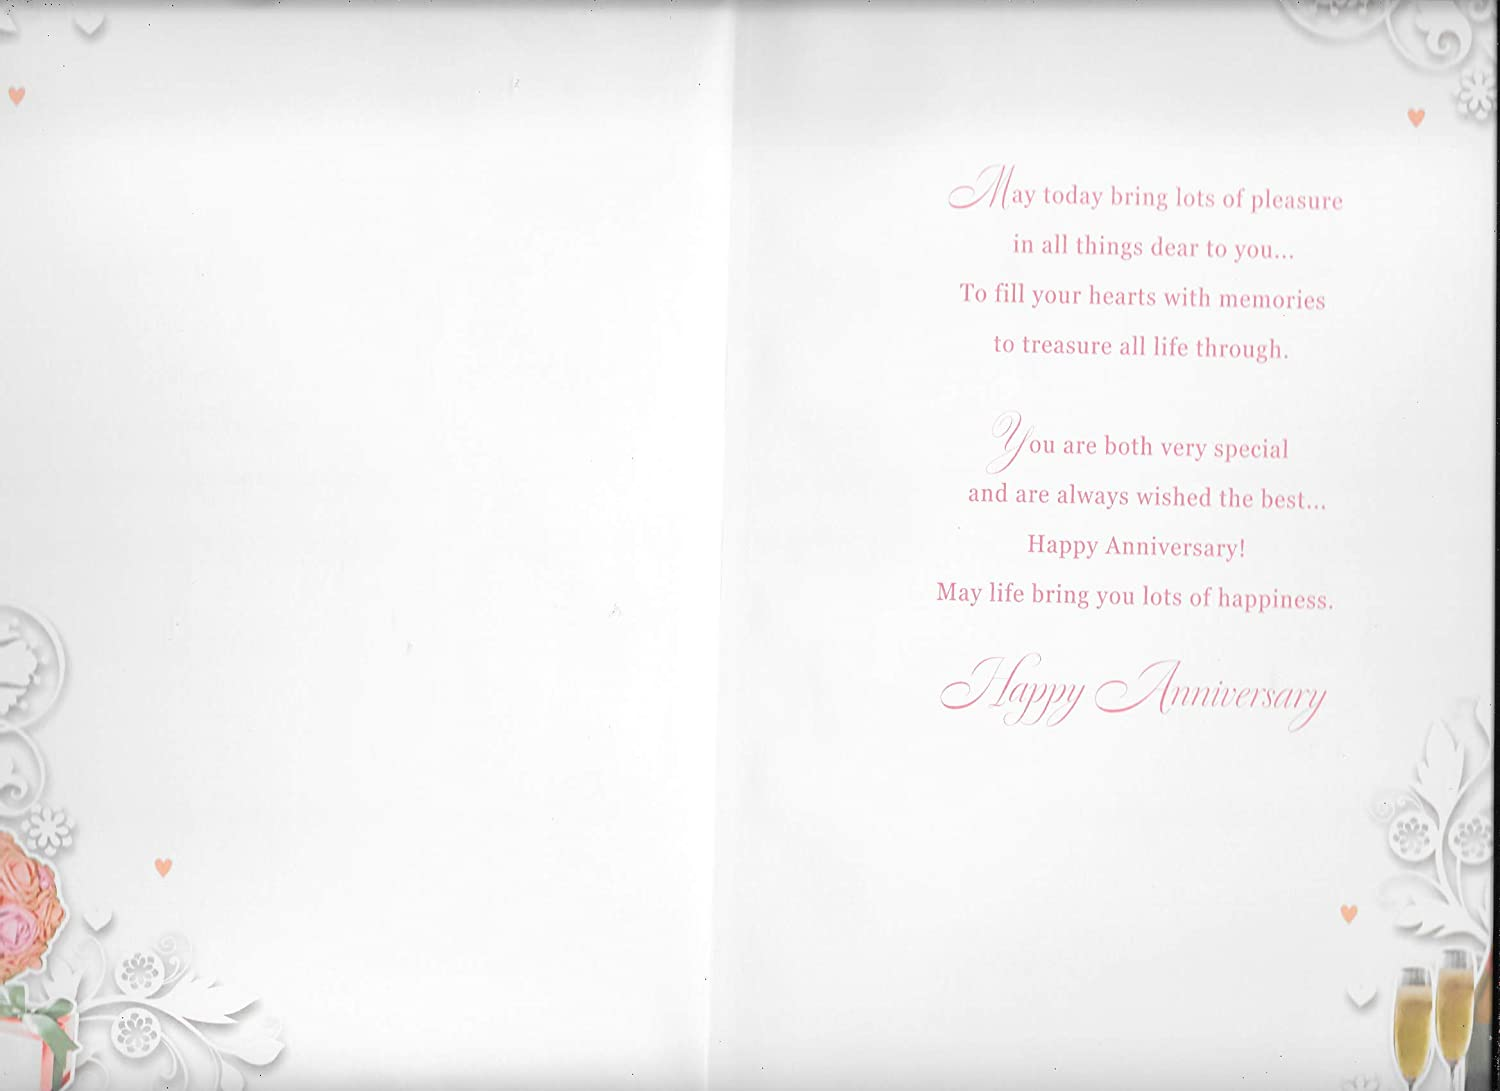 Special Sister and Brother in Law ON Your Anniversary Card***Large 7 X 11 INCHES***1ST Class Post***AC8**